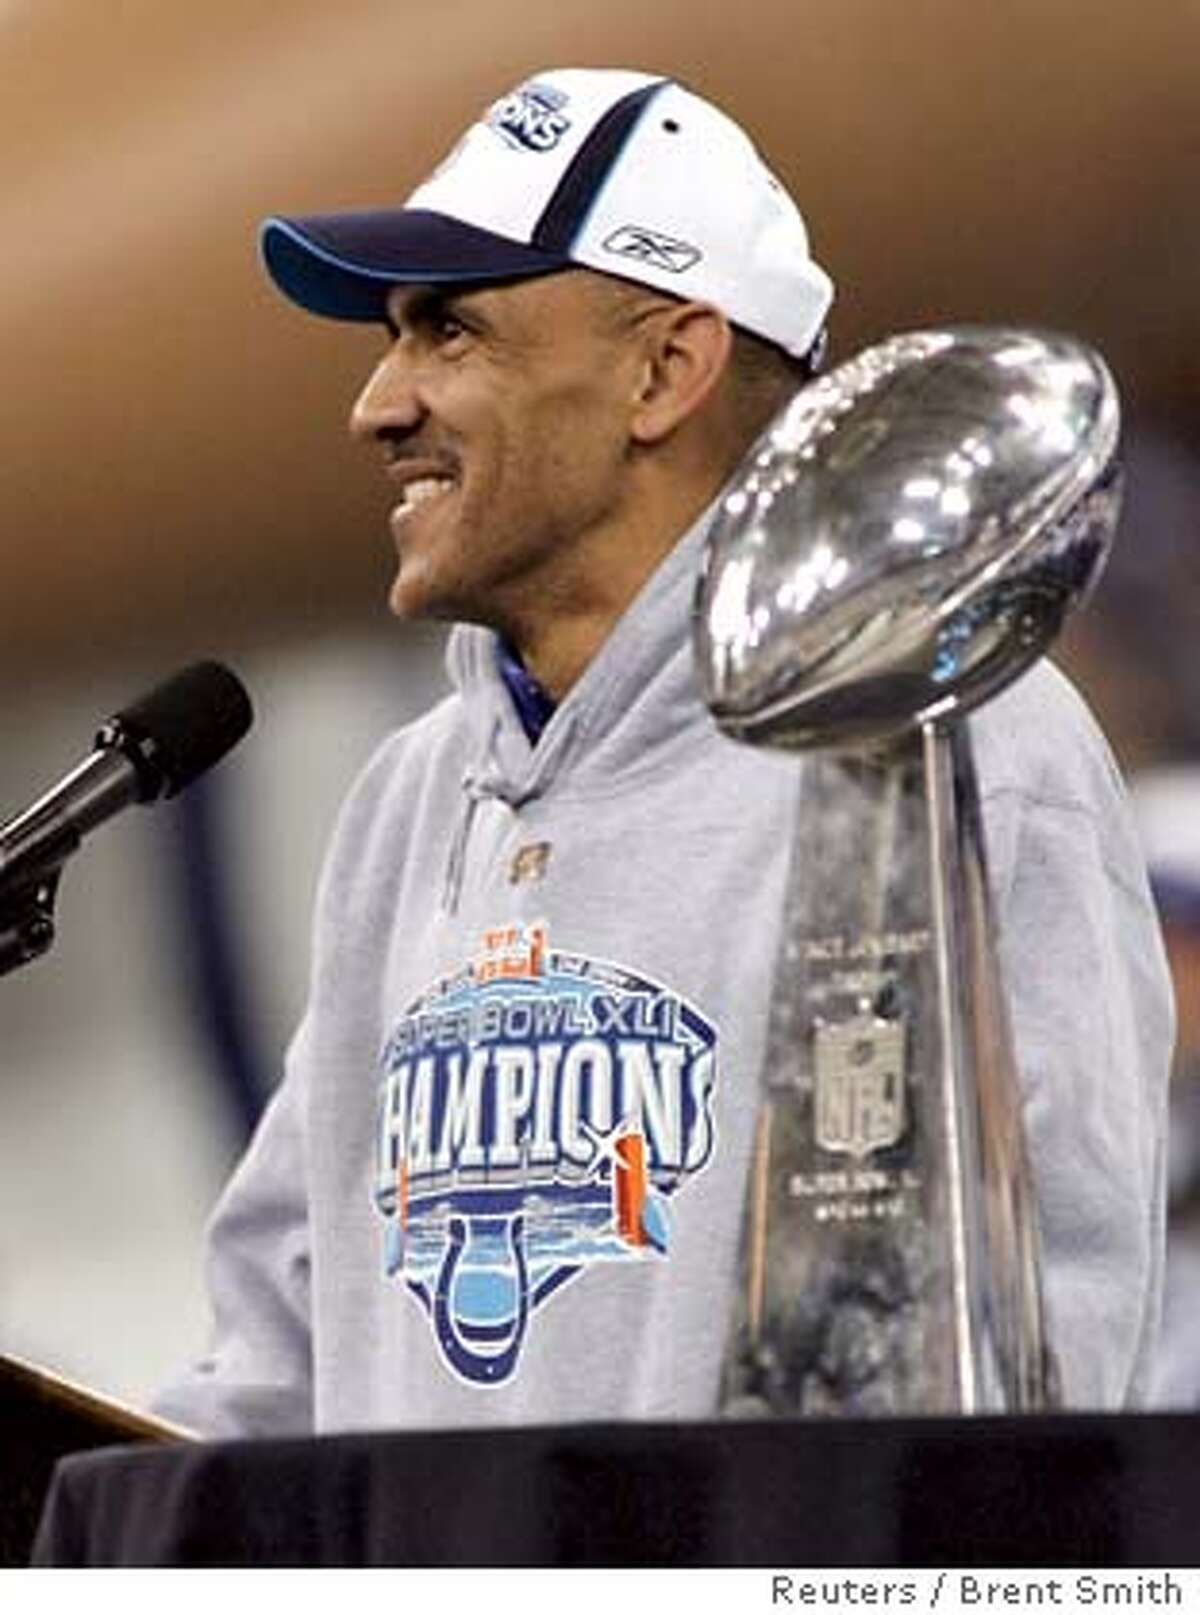 Indianapolis Colts head coach Tony Dungy smiles while standing near the Vince Lombardi Trophy during a rally honoring the Colts' NFL Super Bowl XLI win in Indianapolis February 5, 2007. REUTERS/Brent Smith (UNITED STATES) 0